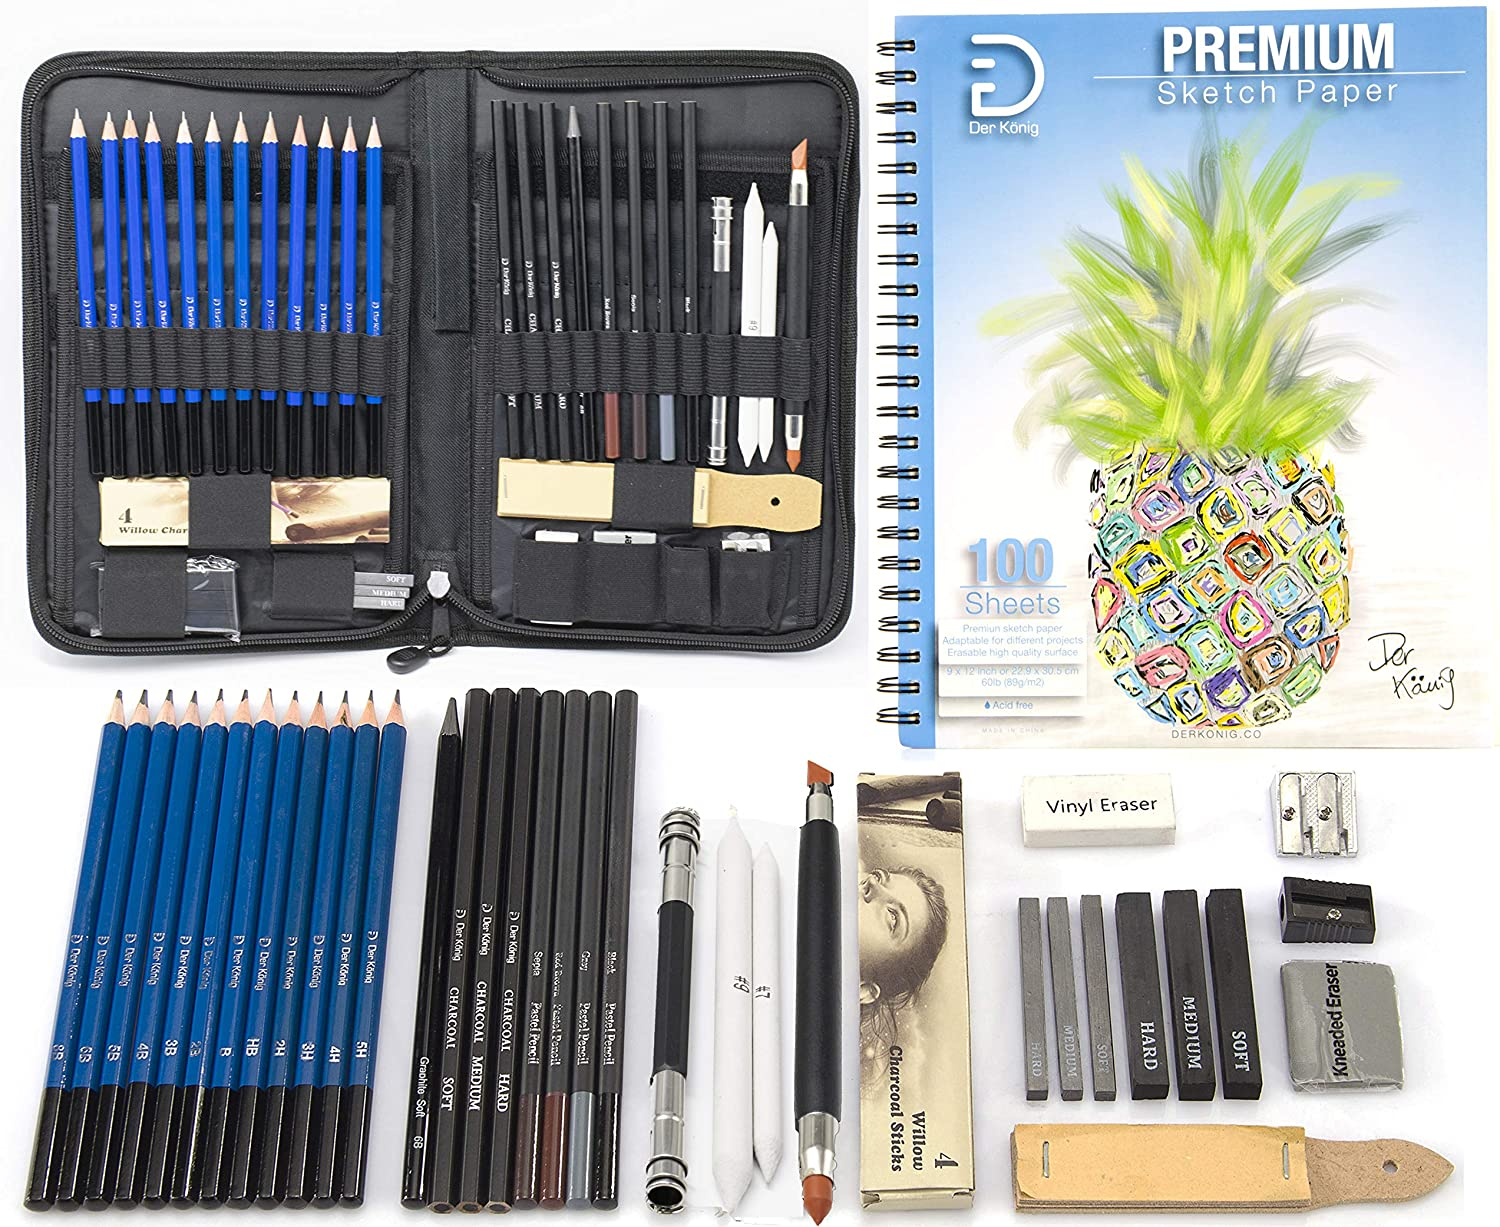 Drawing Pencils and Sketch Pad (41pcs Art Supplies Drawing Kit) - Complete Drawing and Sketching Set: Graphite, Charcoal and Pastels Pencils - Large Sketch Pad 100-Sheets - Pop-up zippered pencil case